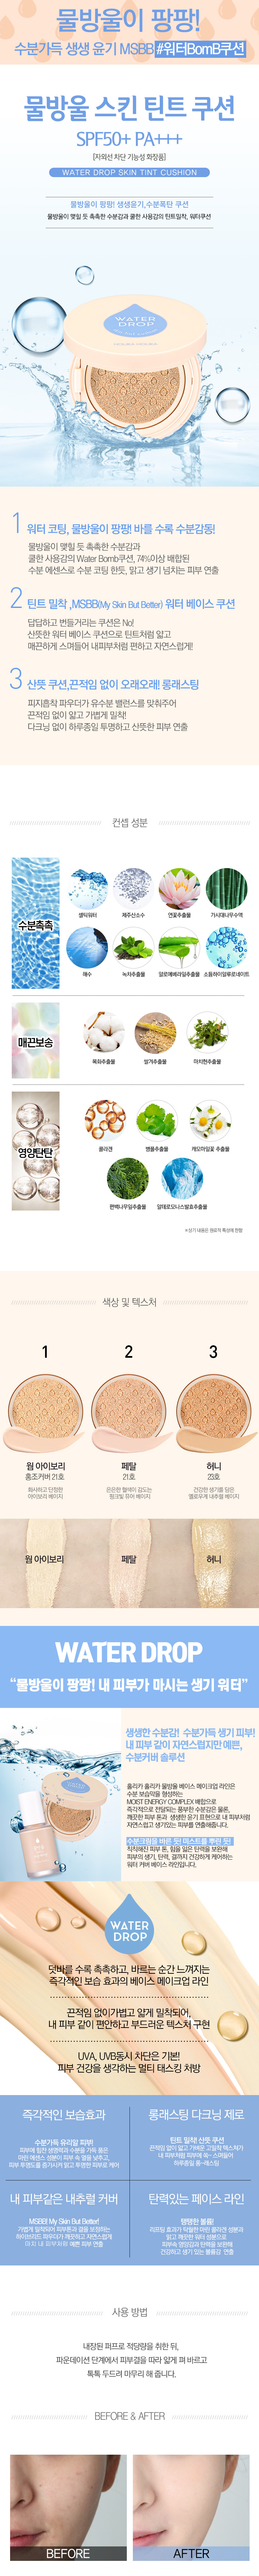 Holika Holika Water Drop Skin Tint Cushion SPF50+PA+++15g malaysia singapore indonesia